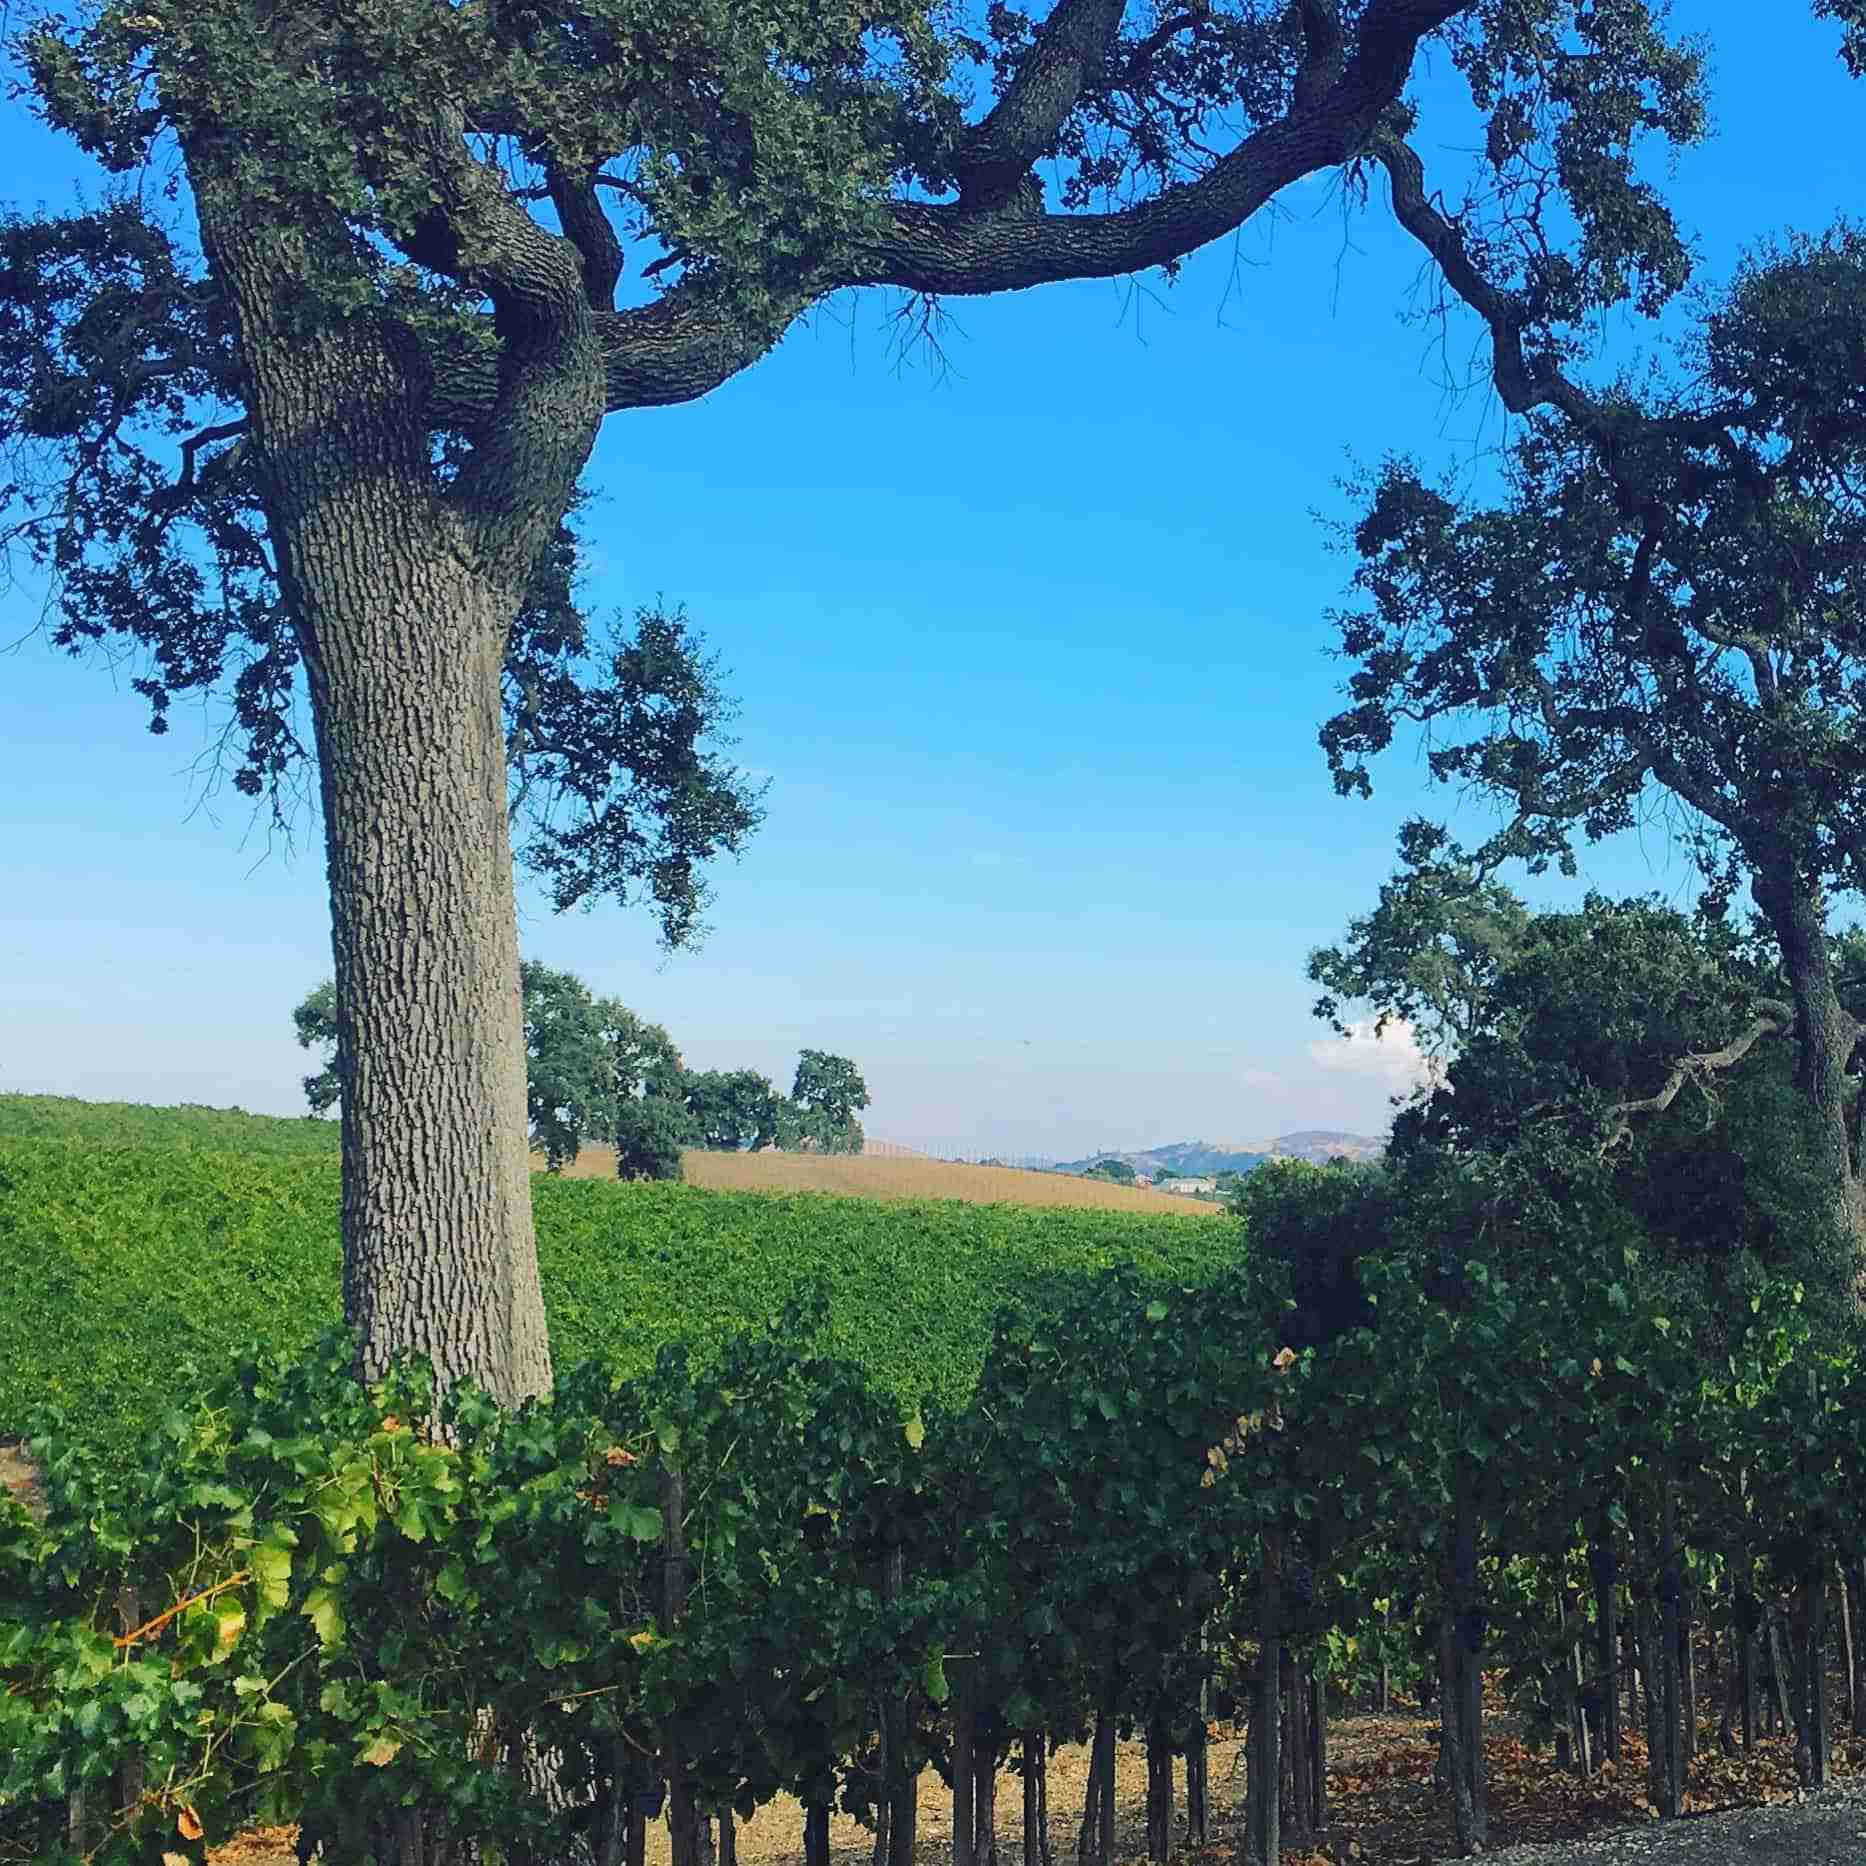 View from Treana Winery in Paso Robles, CA